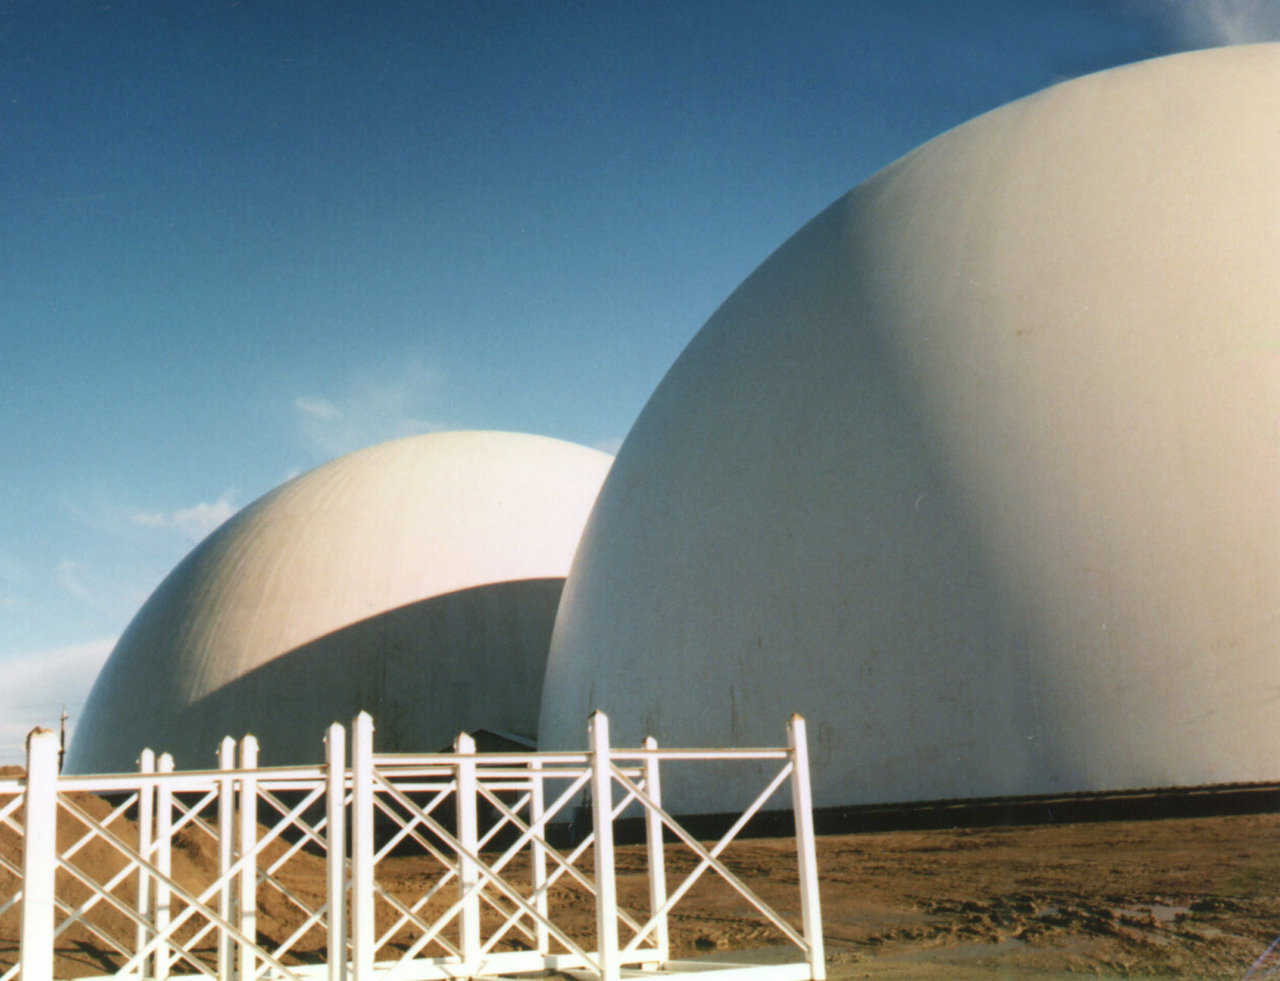 CALAMCO u2014 These two domes which are